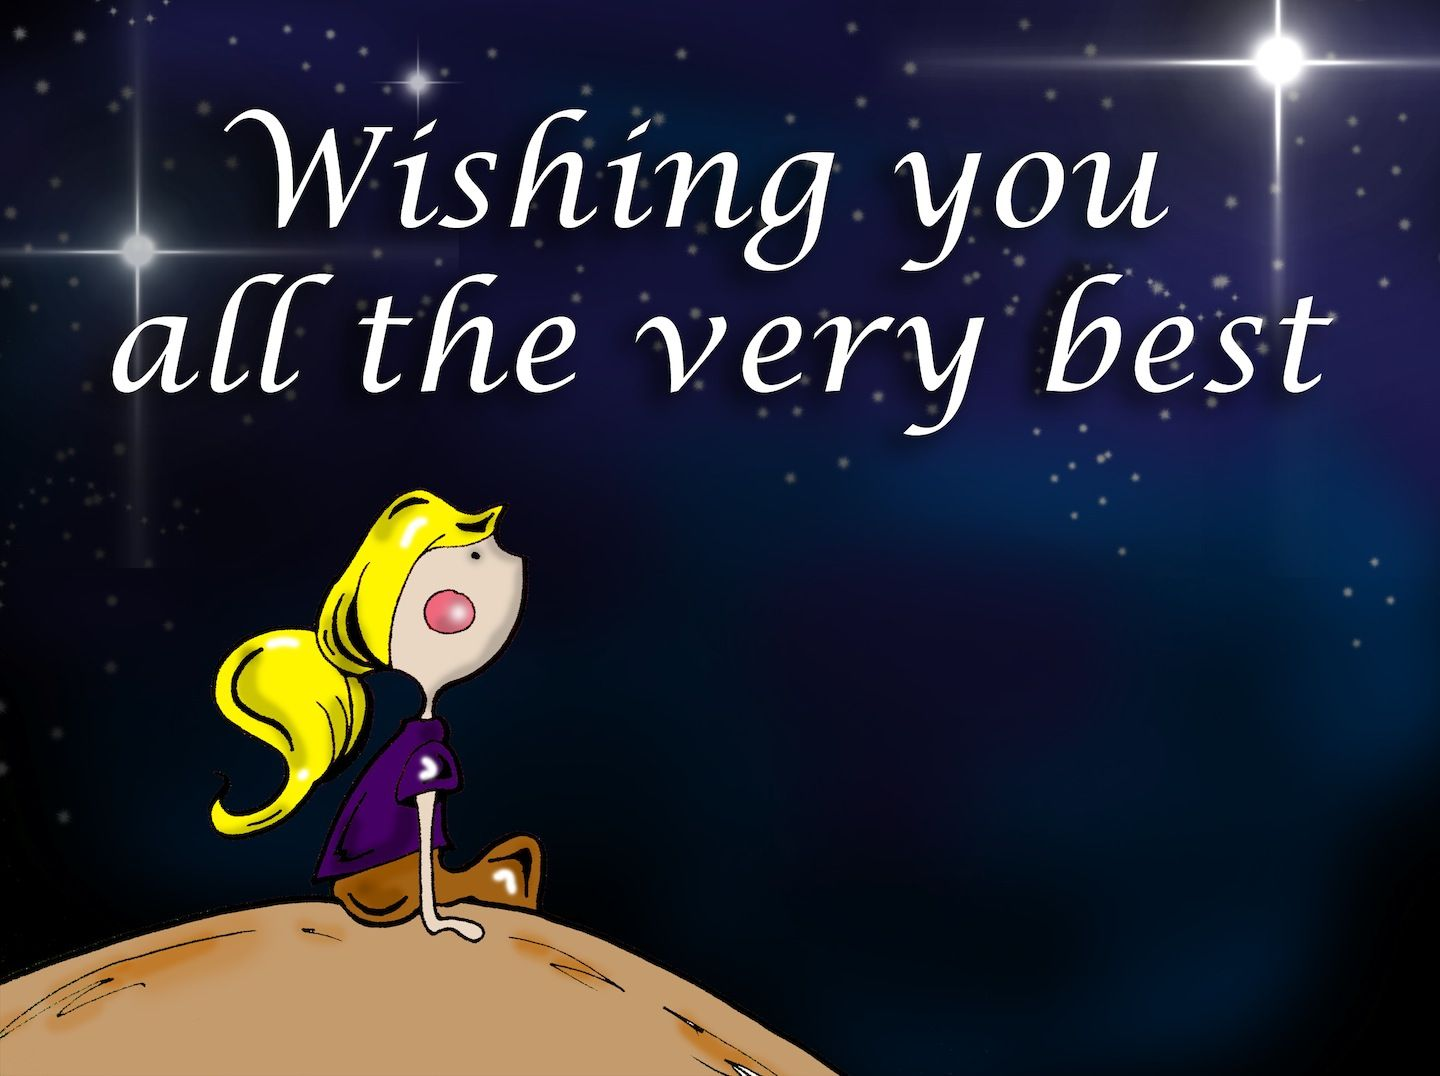 All The Best Greetings Images 2013 Examsgood Luck Wishses